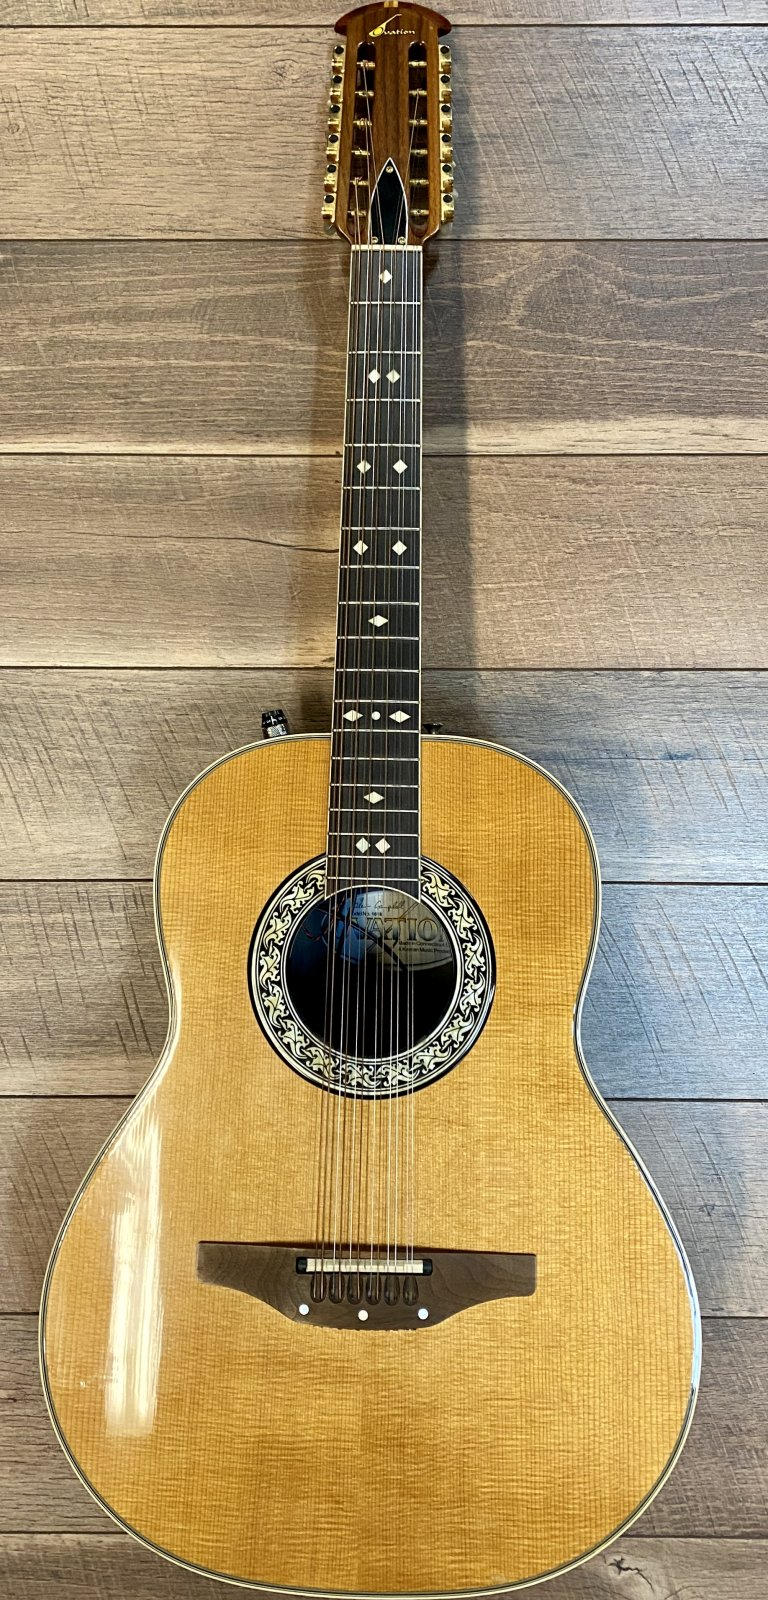 USED - Ovation Model 1618 12-String Acoustic